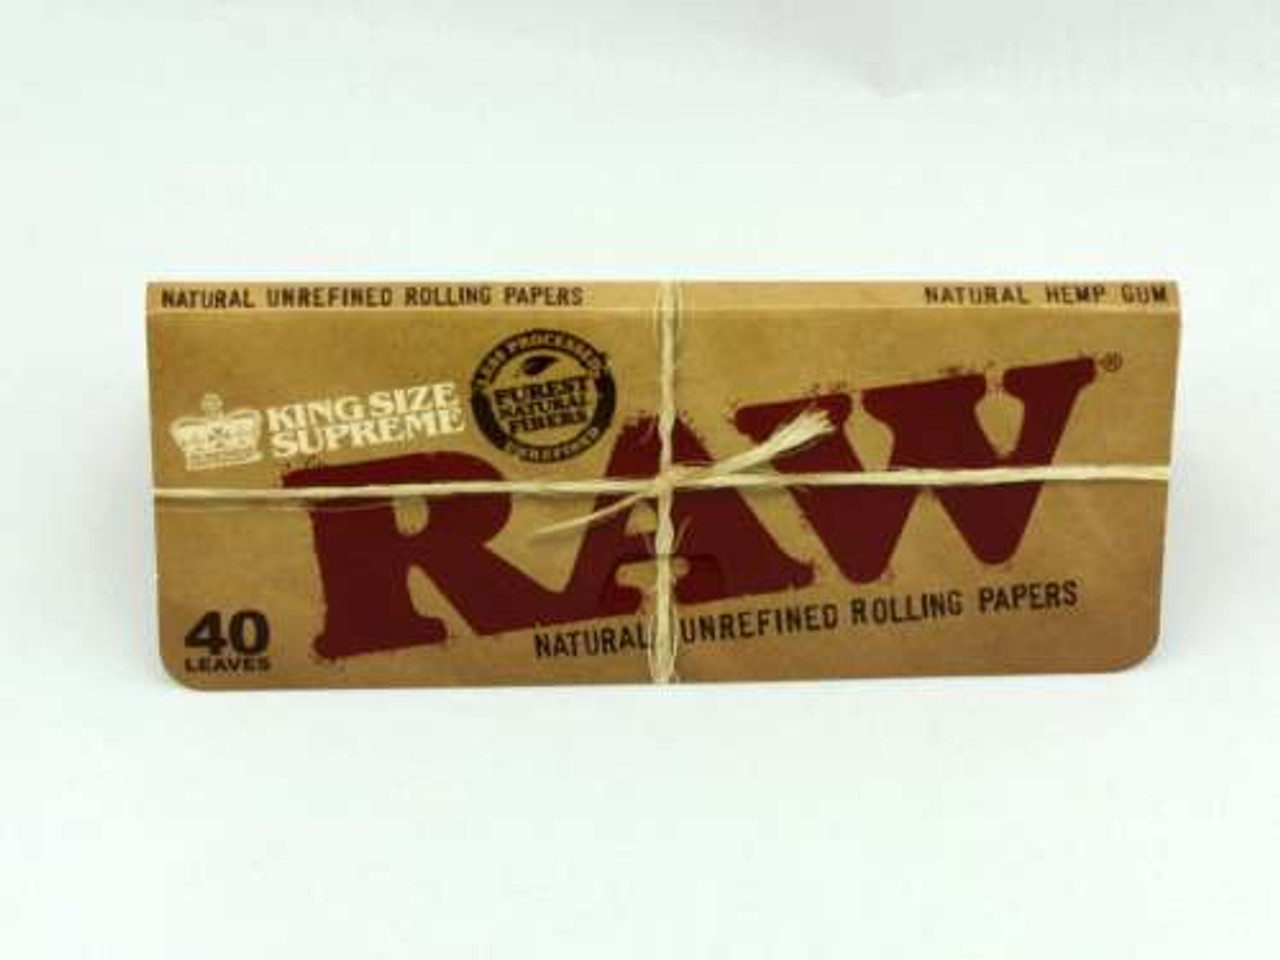 RAW Kingsize Supreme Natural Rolling Papers